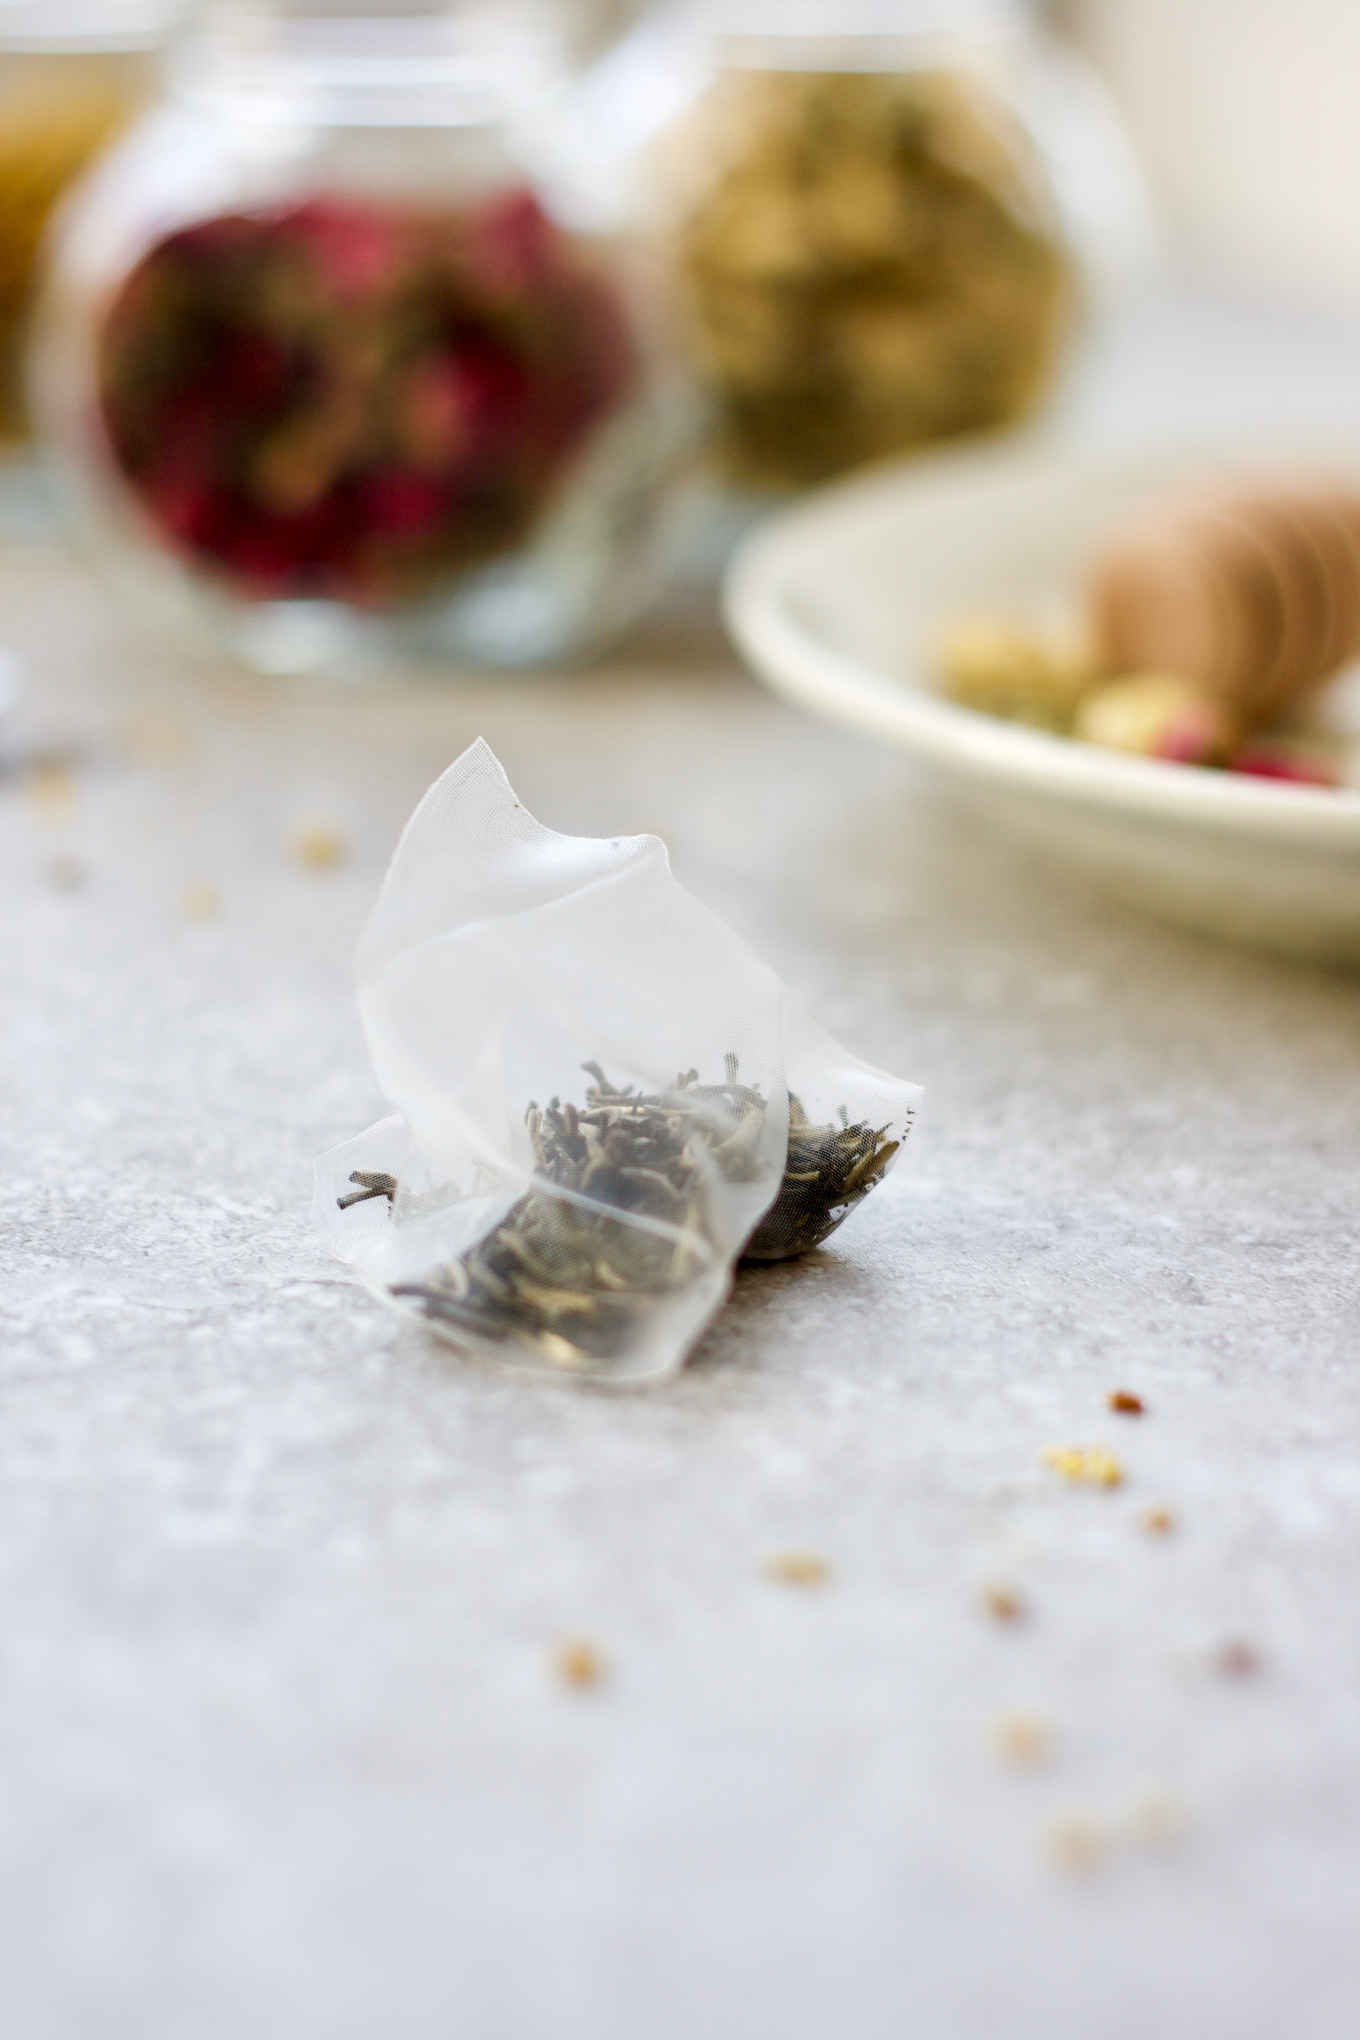 Try these 3 easy DIY floral teas. Chrysanthemum, rosebud and osmanthus are popular herbal flowers used in tea infusions in China. These 3 herbal flower and tea pairings will dress up your traditional teas, while unleashing the beautiful aromas and healing benefits of the herbal flowers.